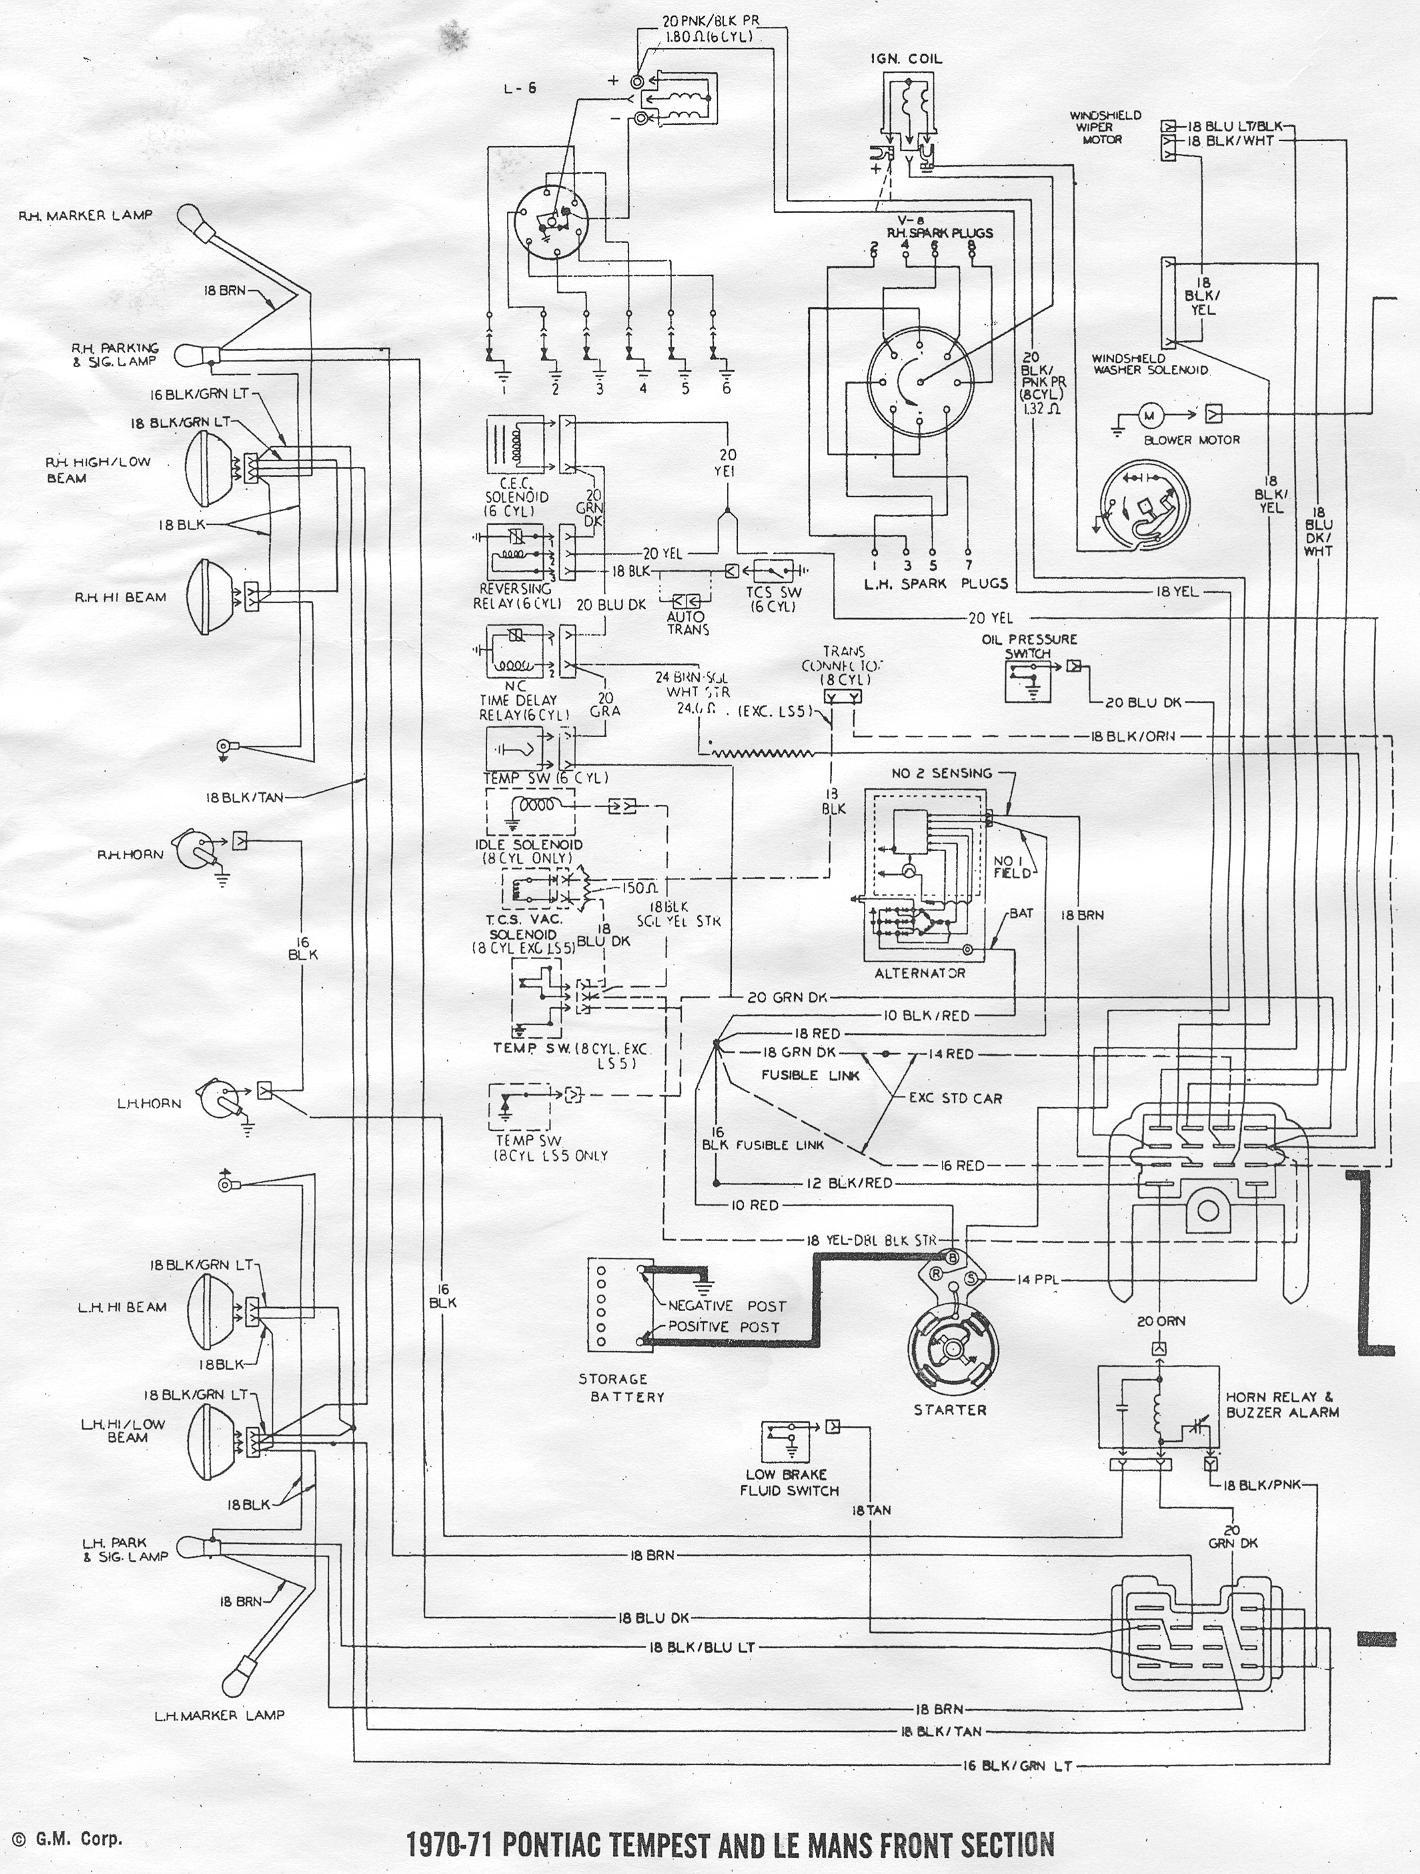 1968 camaro wiring diagram 1968 image wiring diagram 1968 camaro wiring diagram wiring diagram and hernes on 1968 camaro wiring diagram